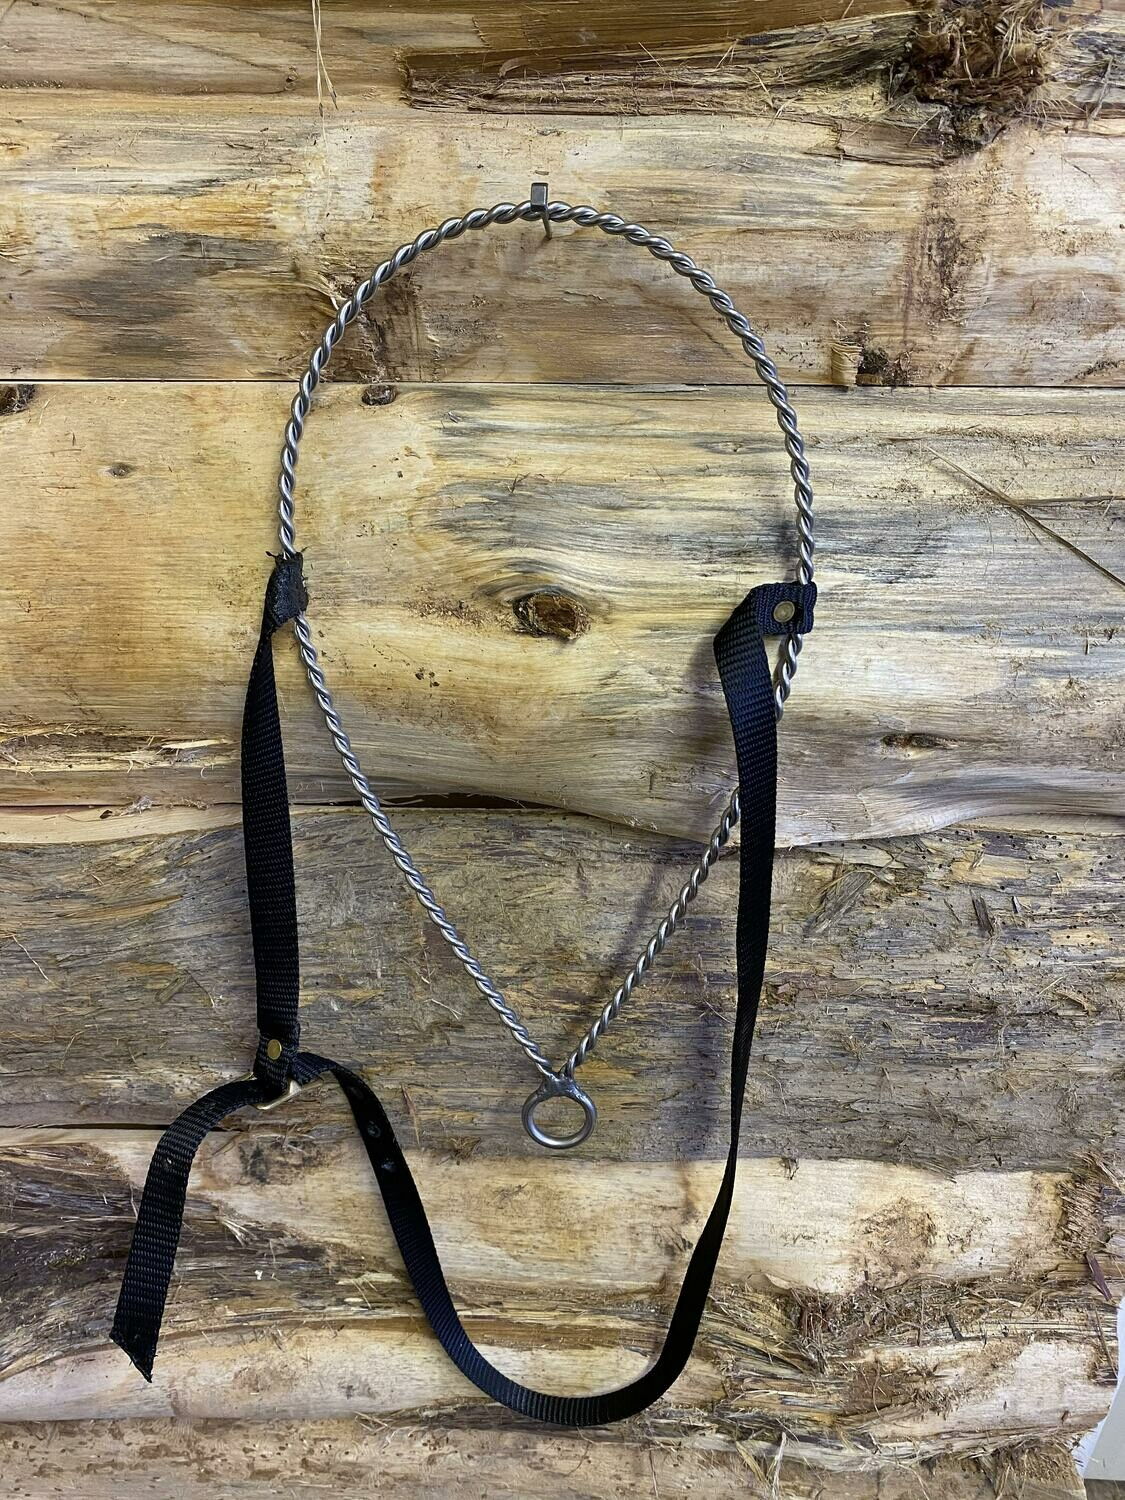 #203 twisted wire tiedown